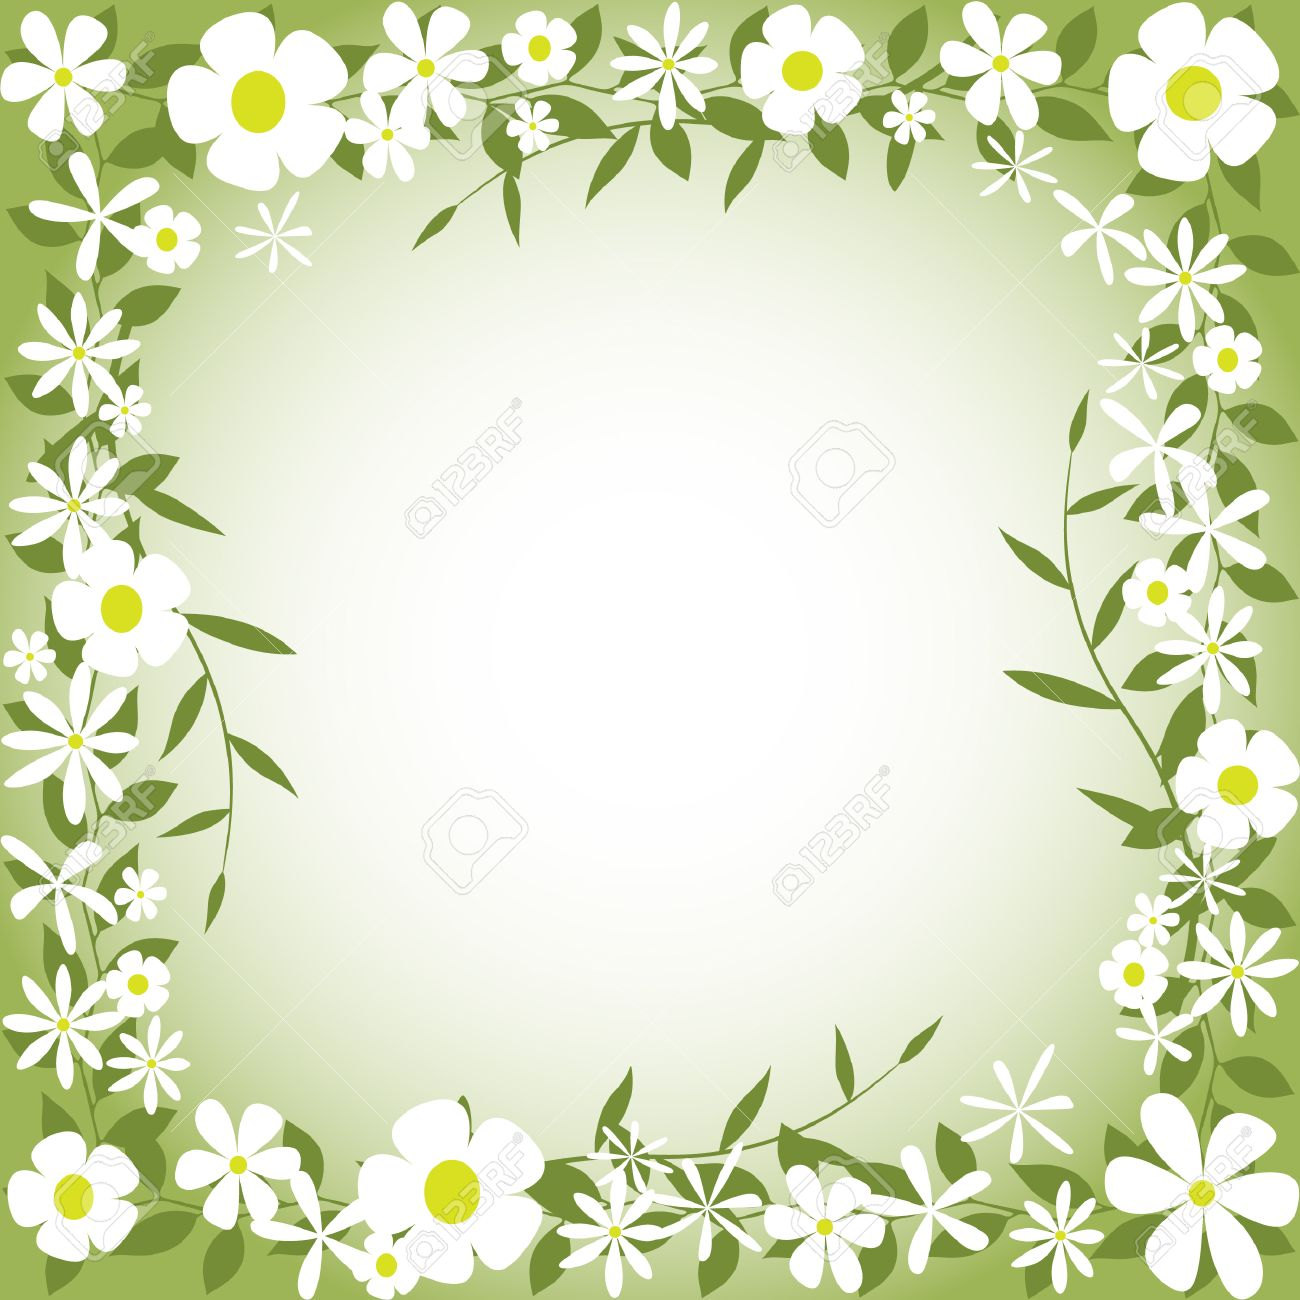 A Floral Border with White Flowers and Leaves Stock Vector - 8290082